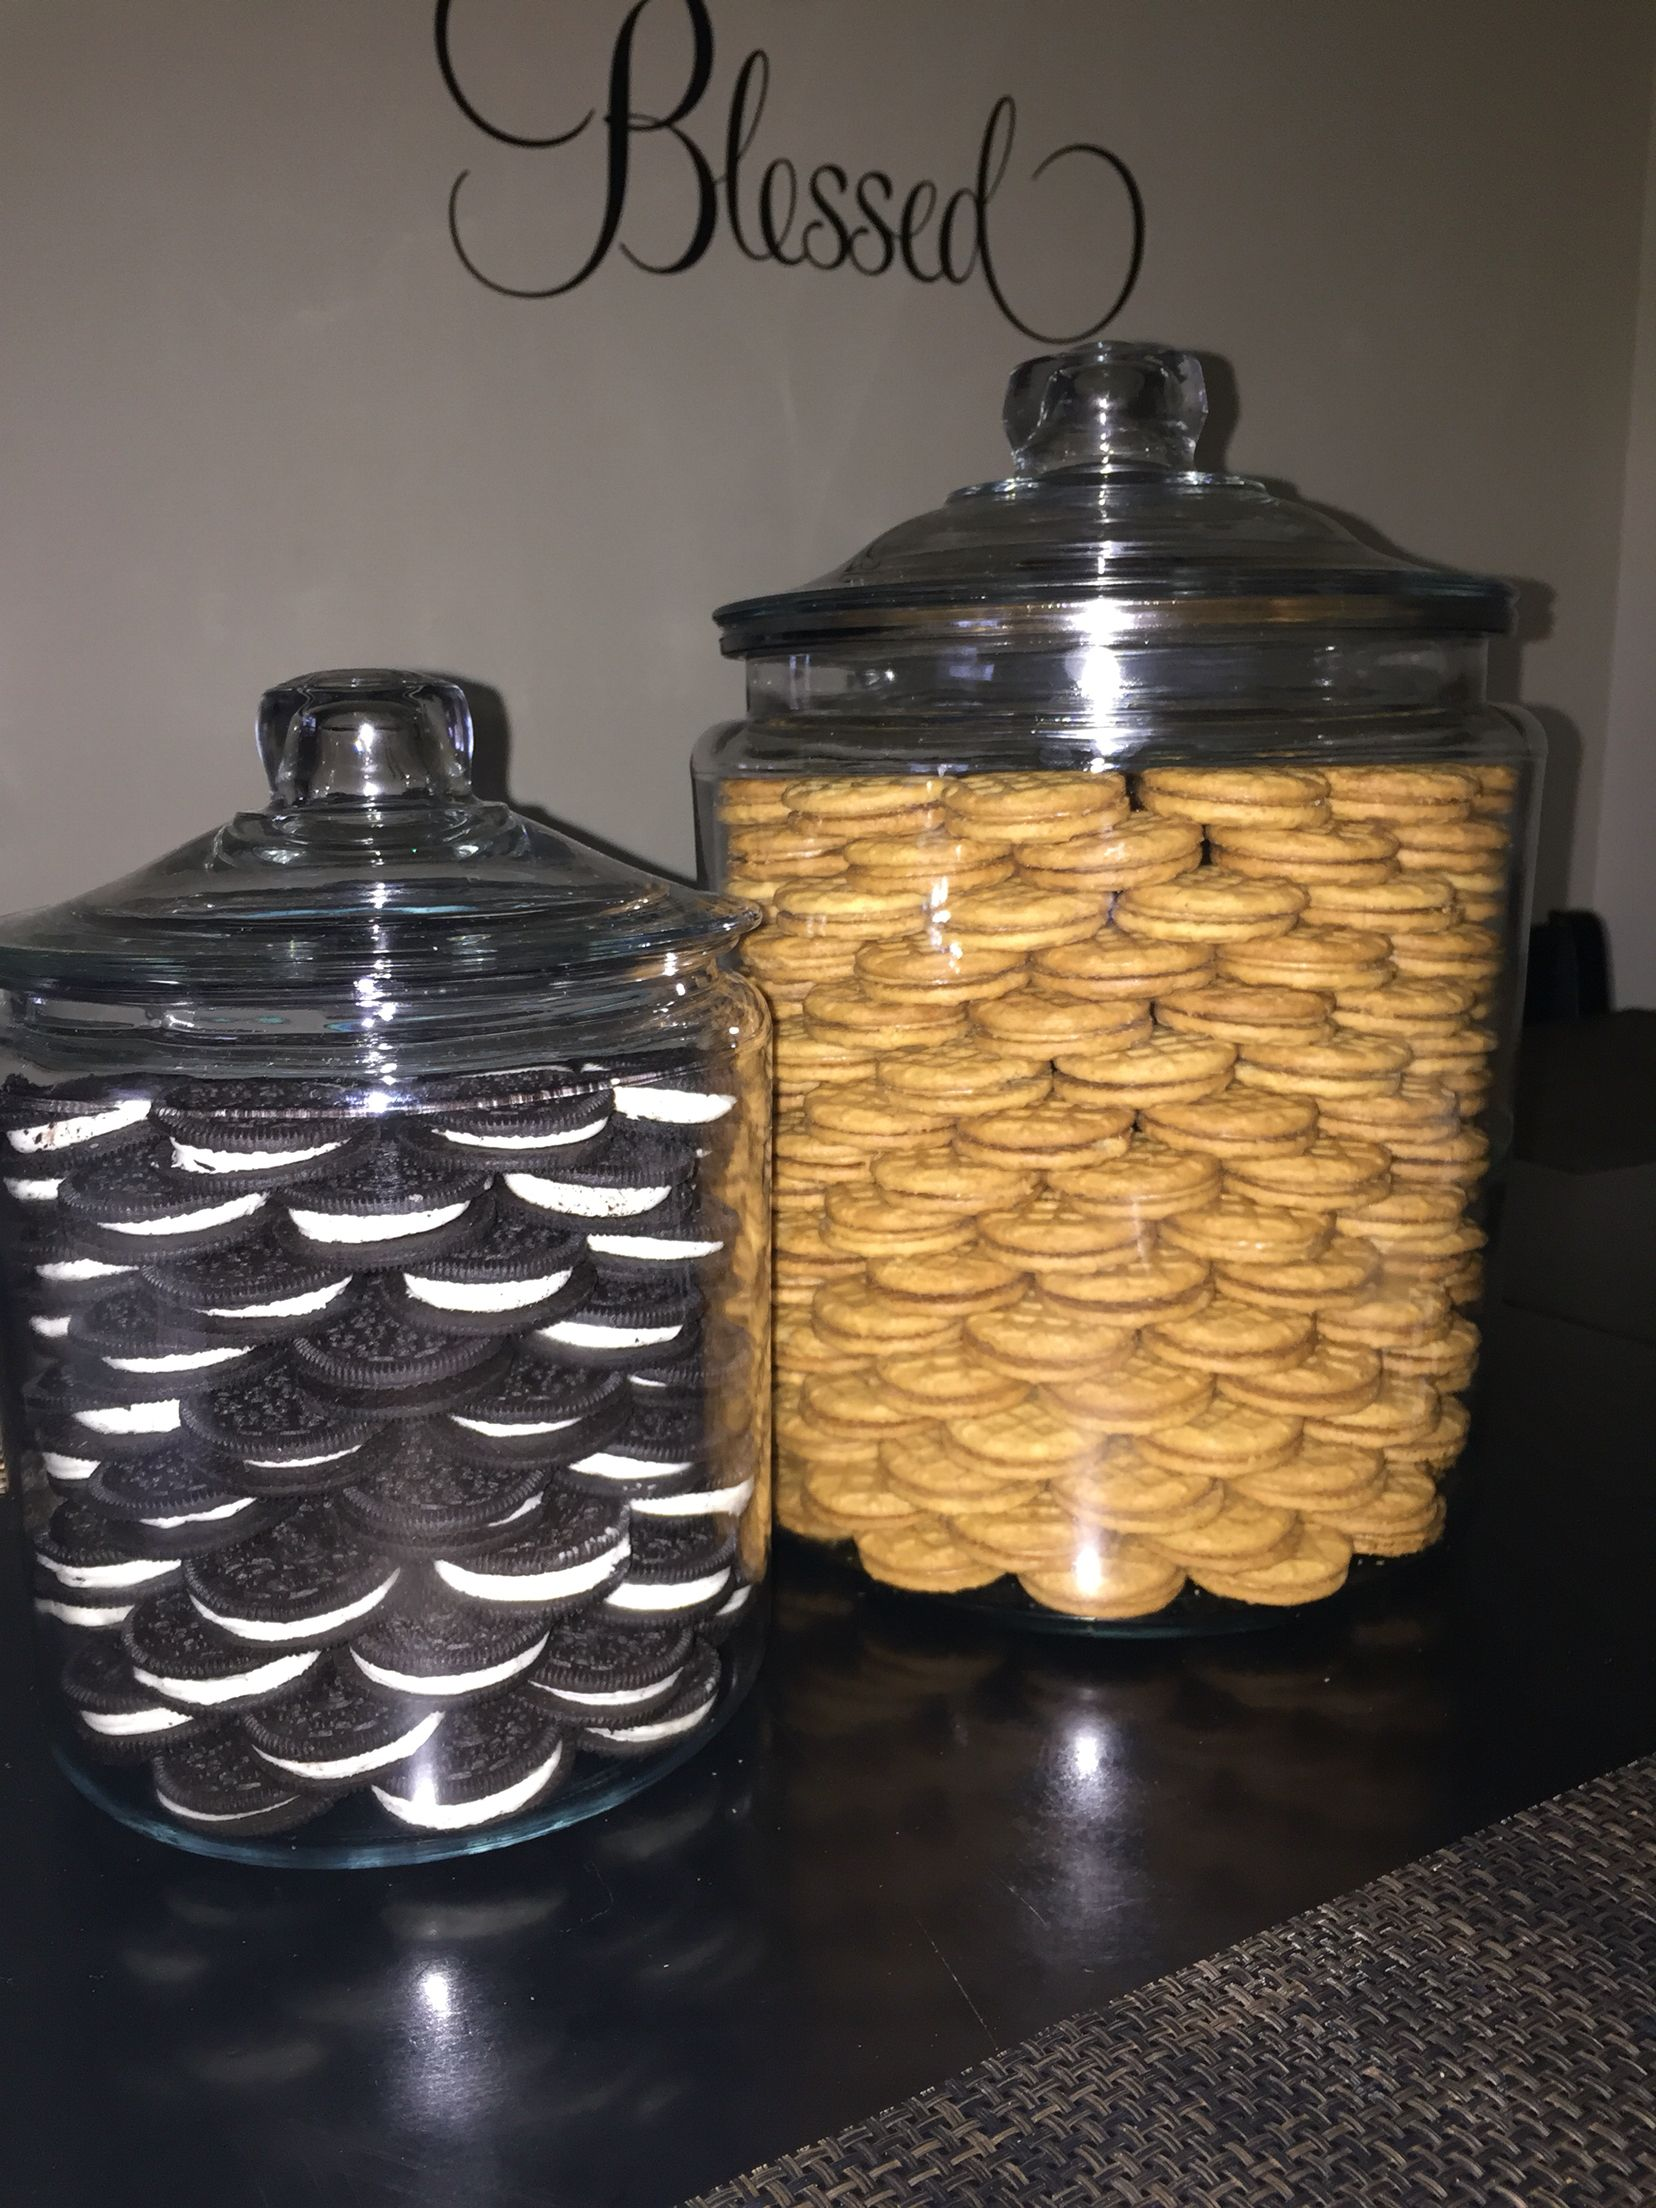 Khloe Kardashian Cookie Jar Fair My Cookie Jars Who Says Organization Has To Be Boring Ok Ok Design Inspiration